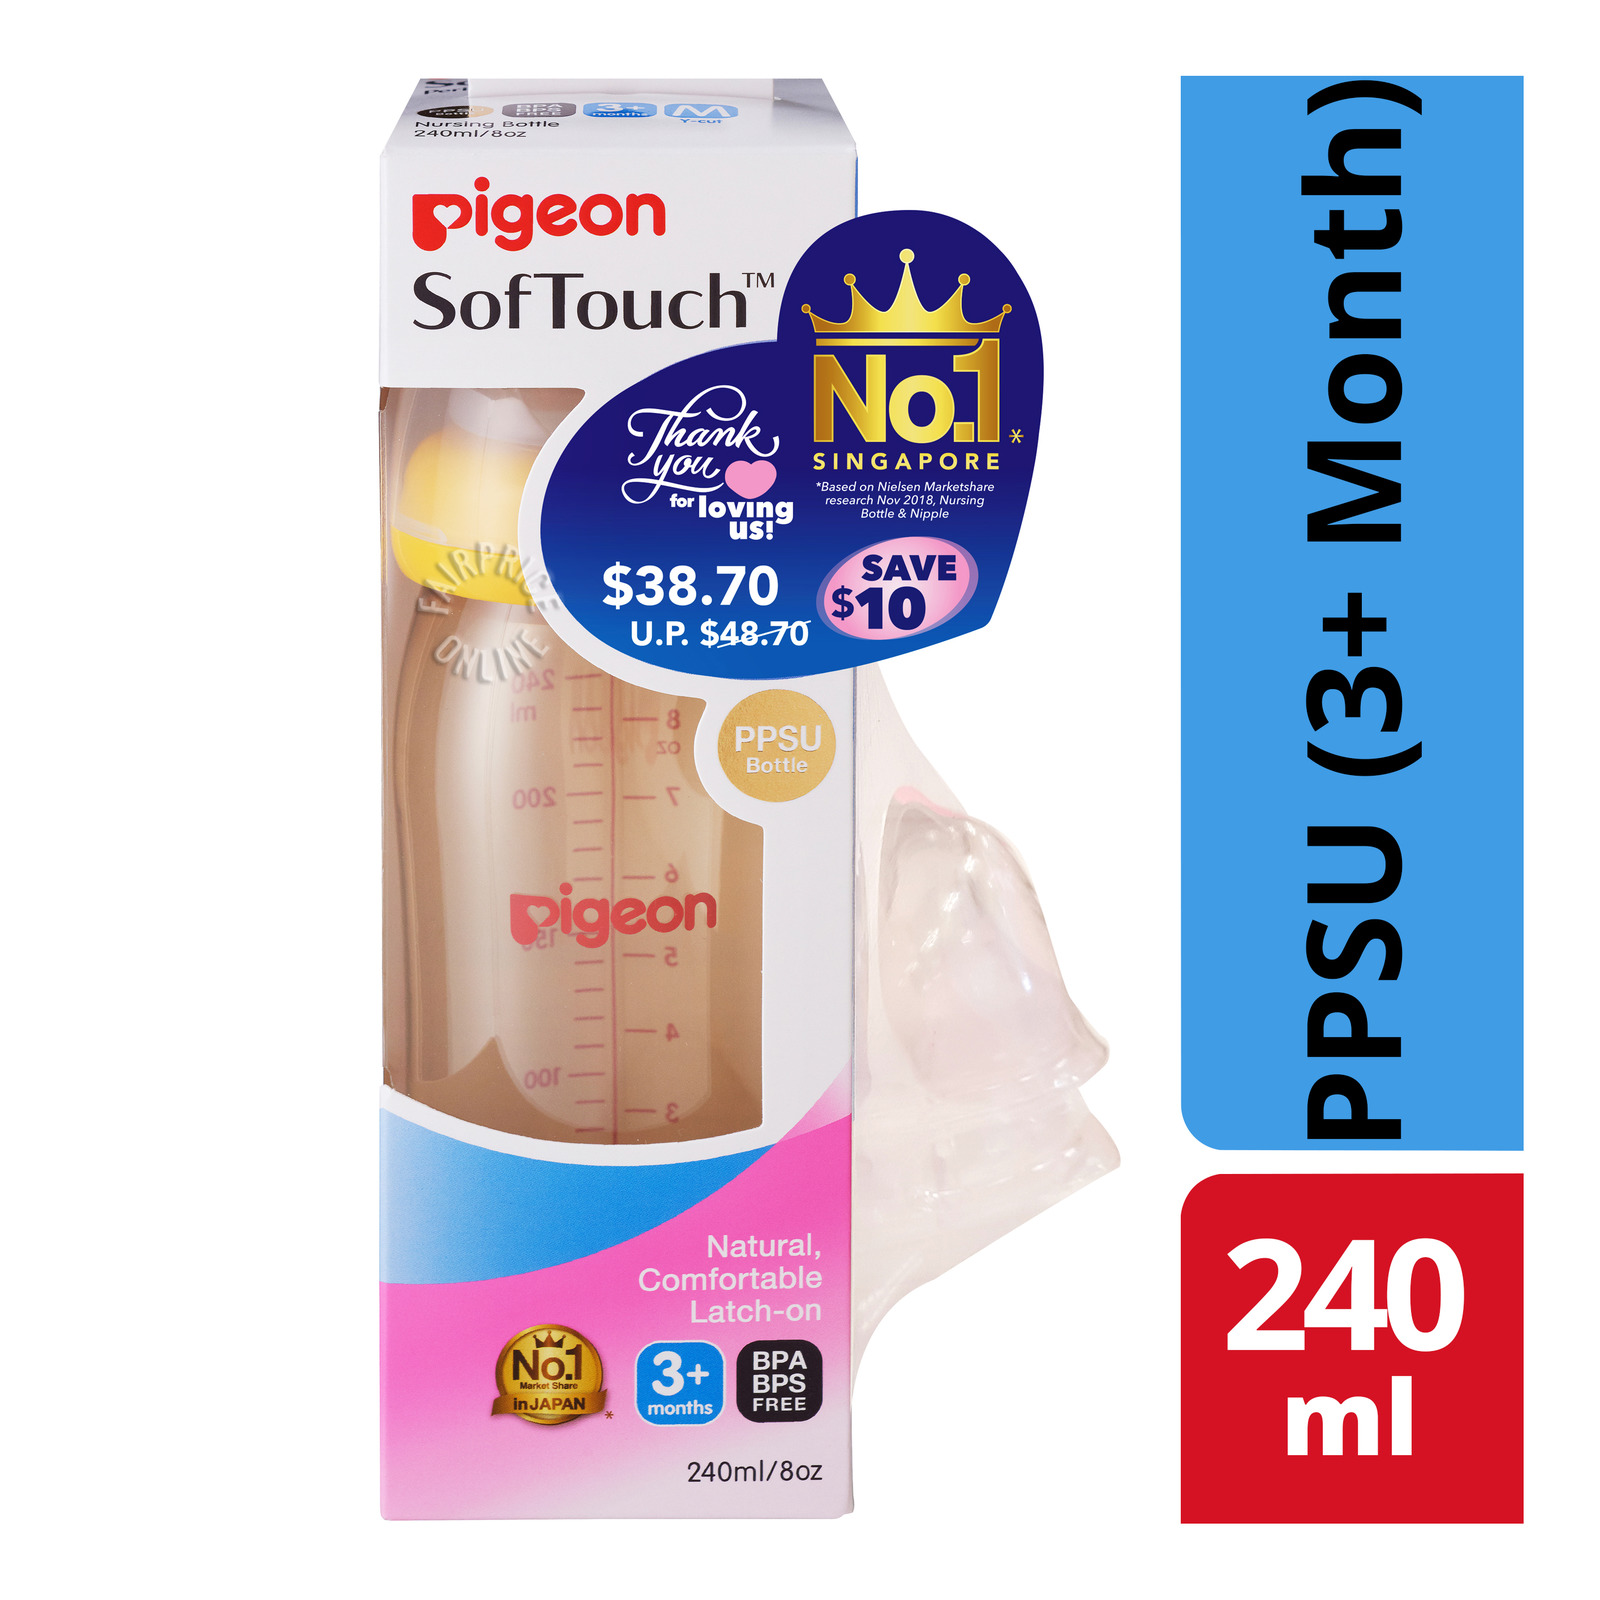 Pigeon SofTouch Baby Bottle - PPSU (3+ Month)